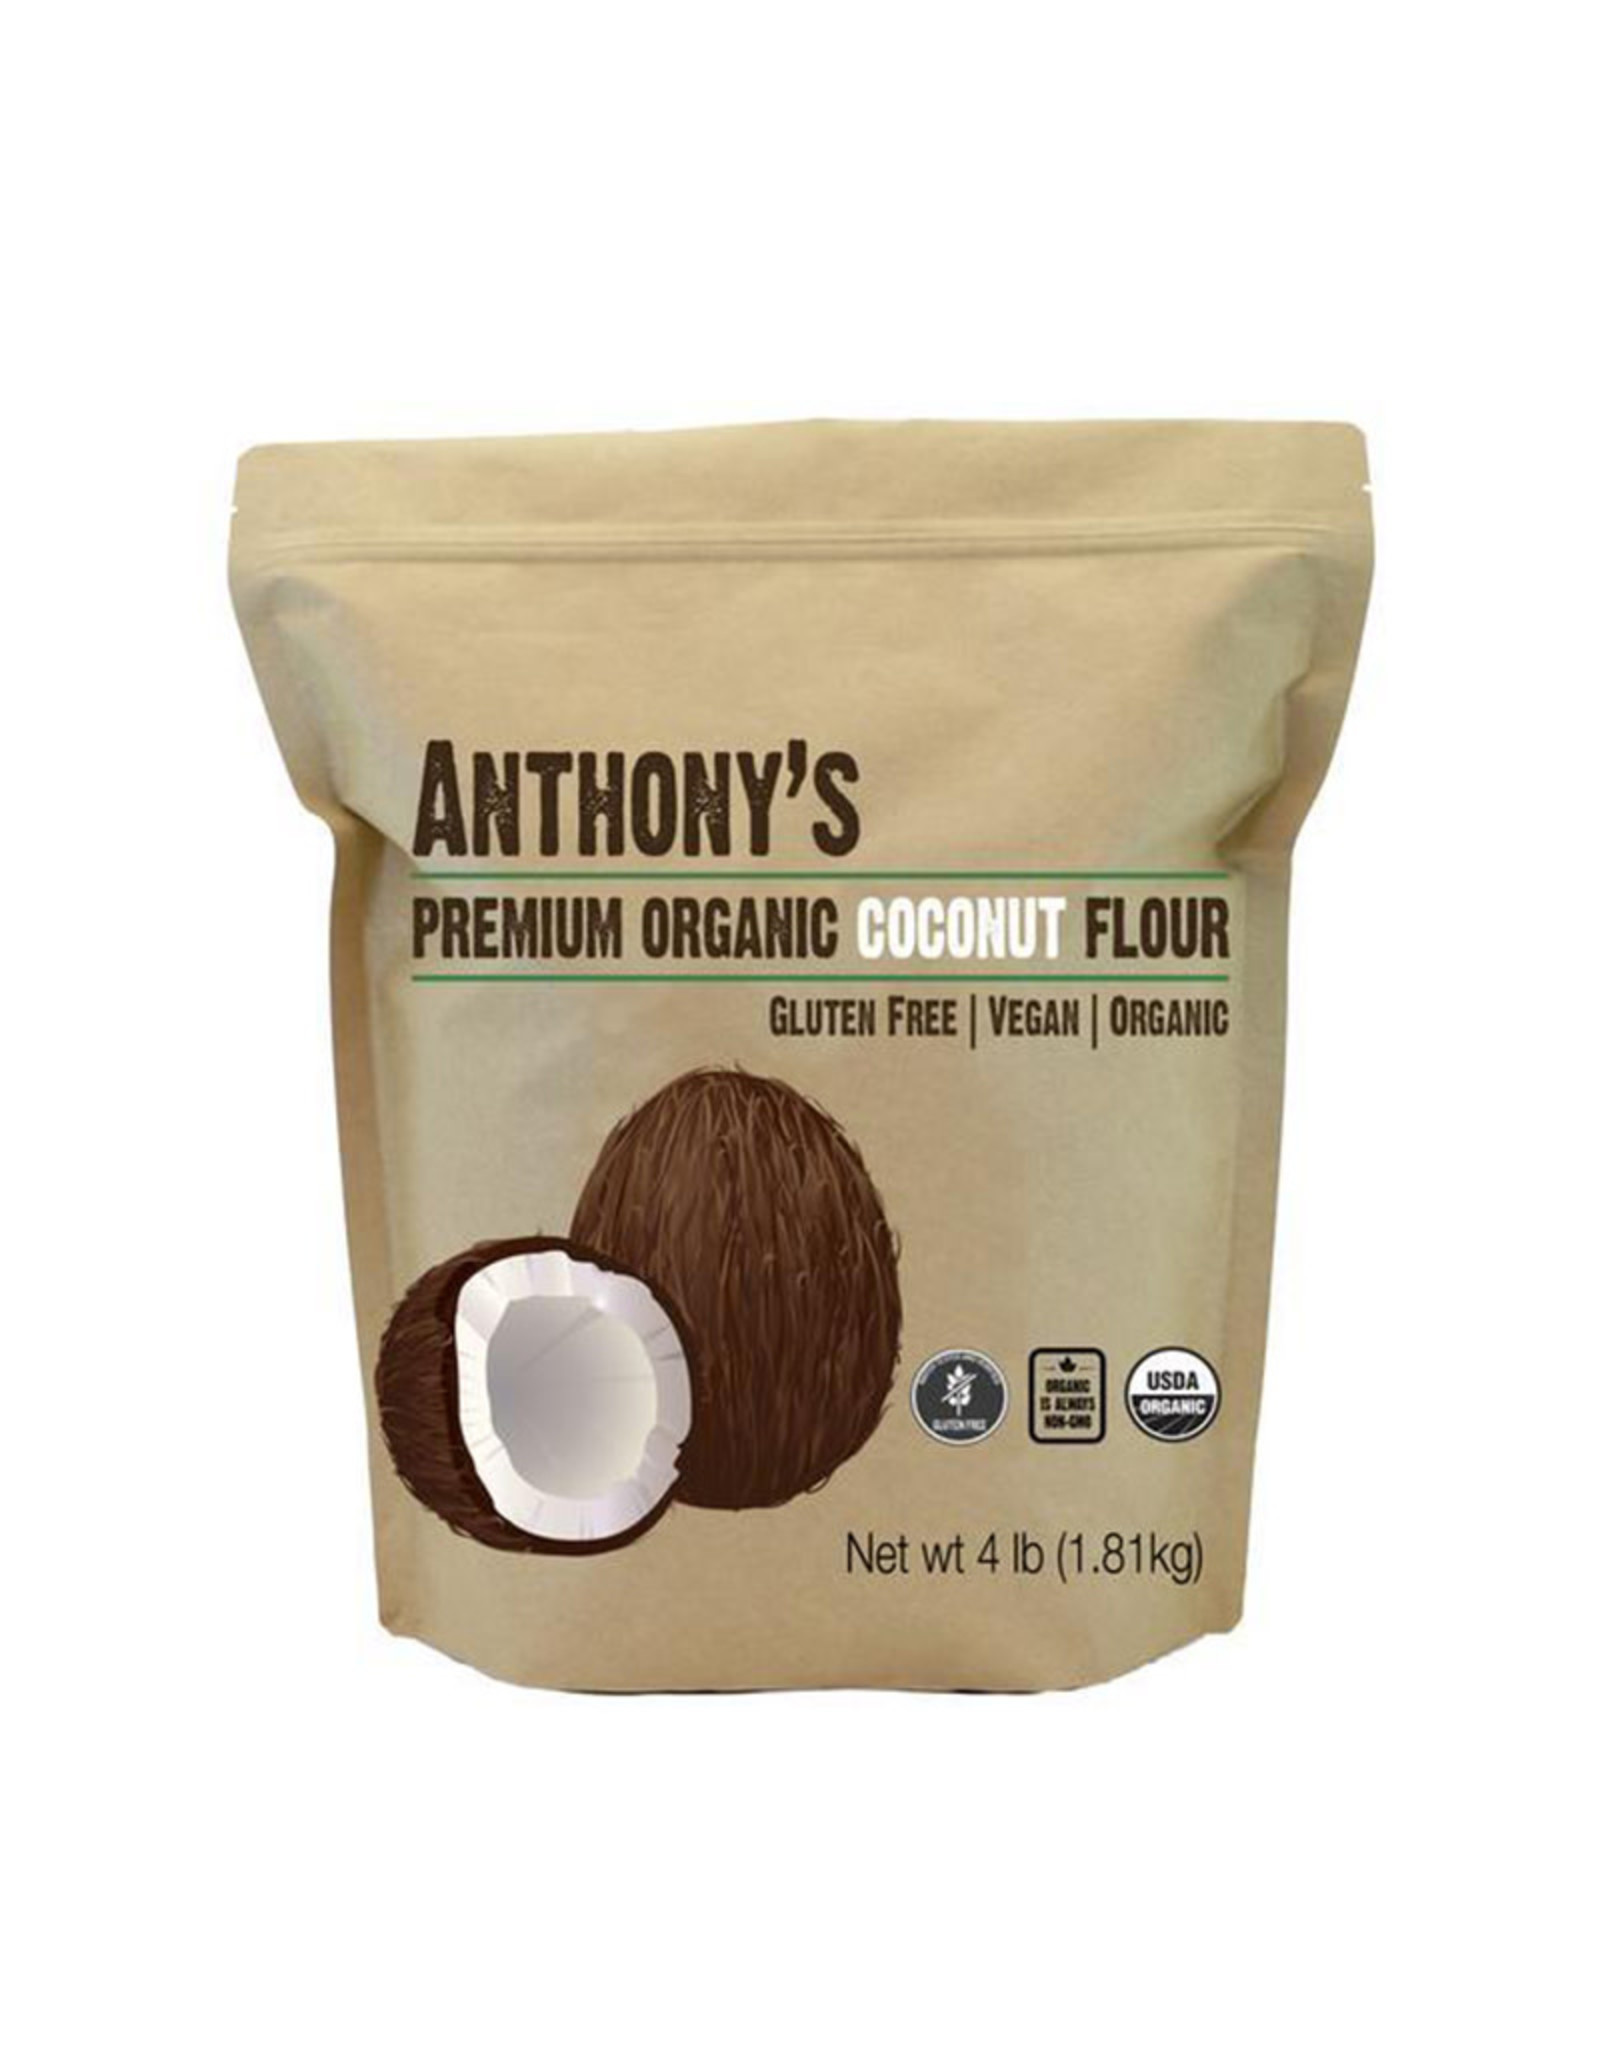 Anthonys Goods Anthonys Goods - Organic Coconut Flour (1.81kg)